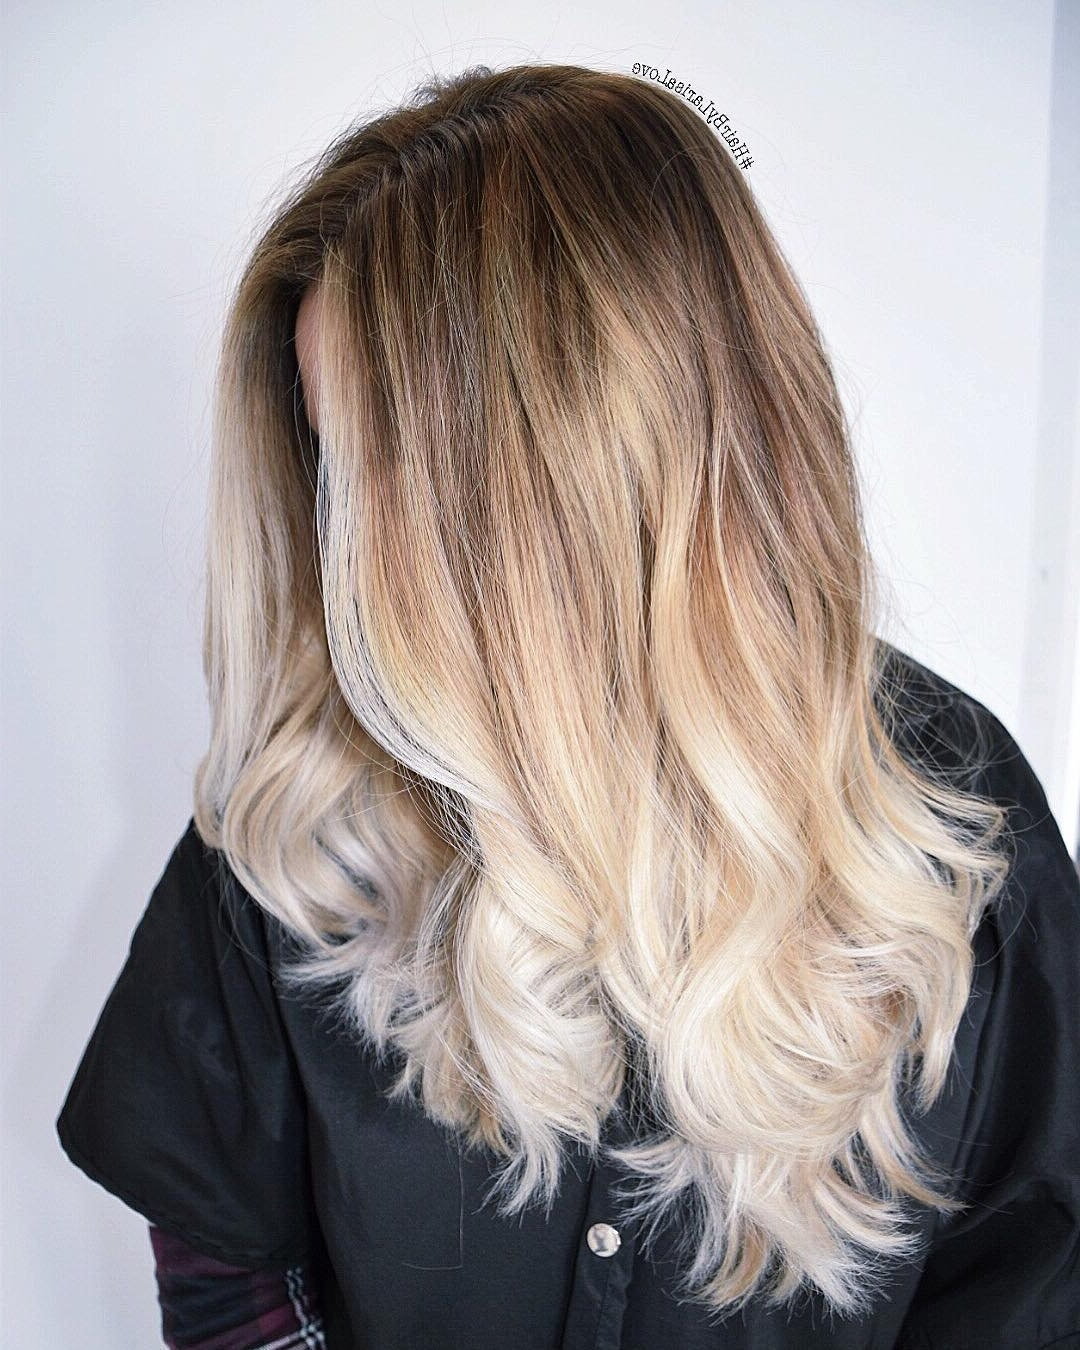 Latest Blonde Ombre Waves Hairstyles For 20 Perfect Ways To Get Beach Waves In Your Hair {2018 Update} (View 4 of 20)